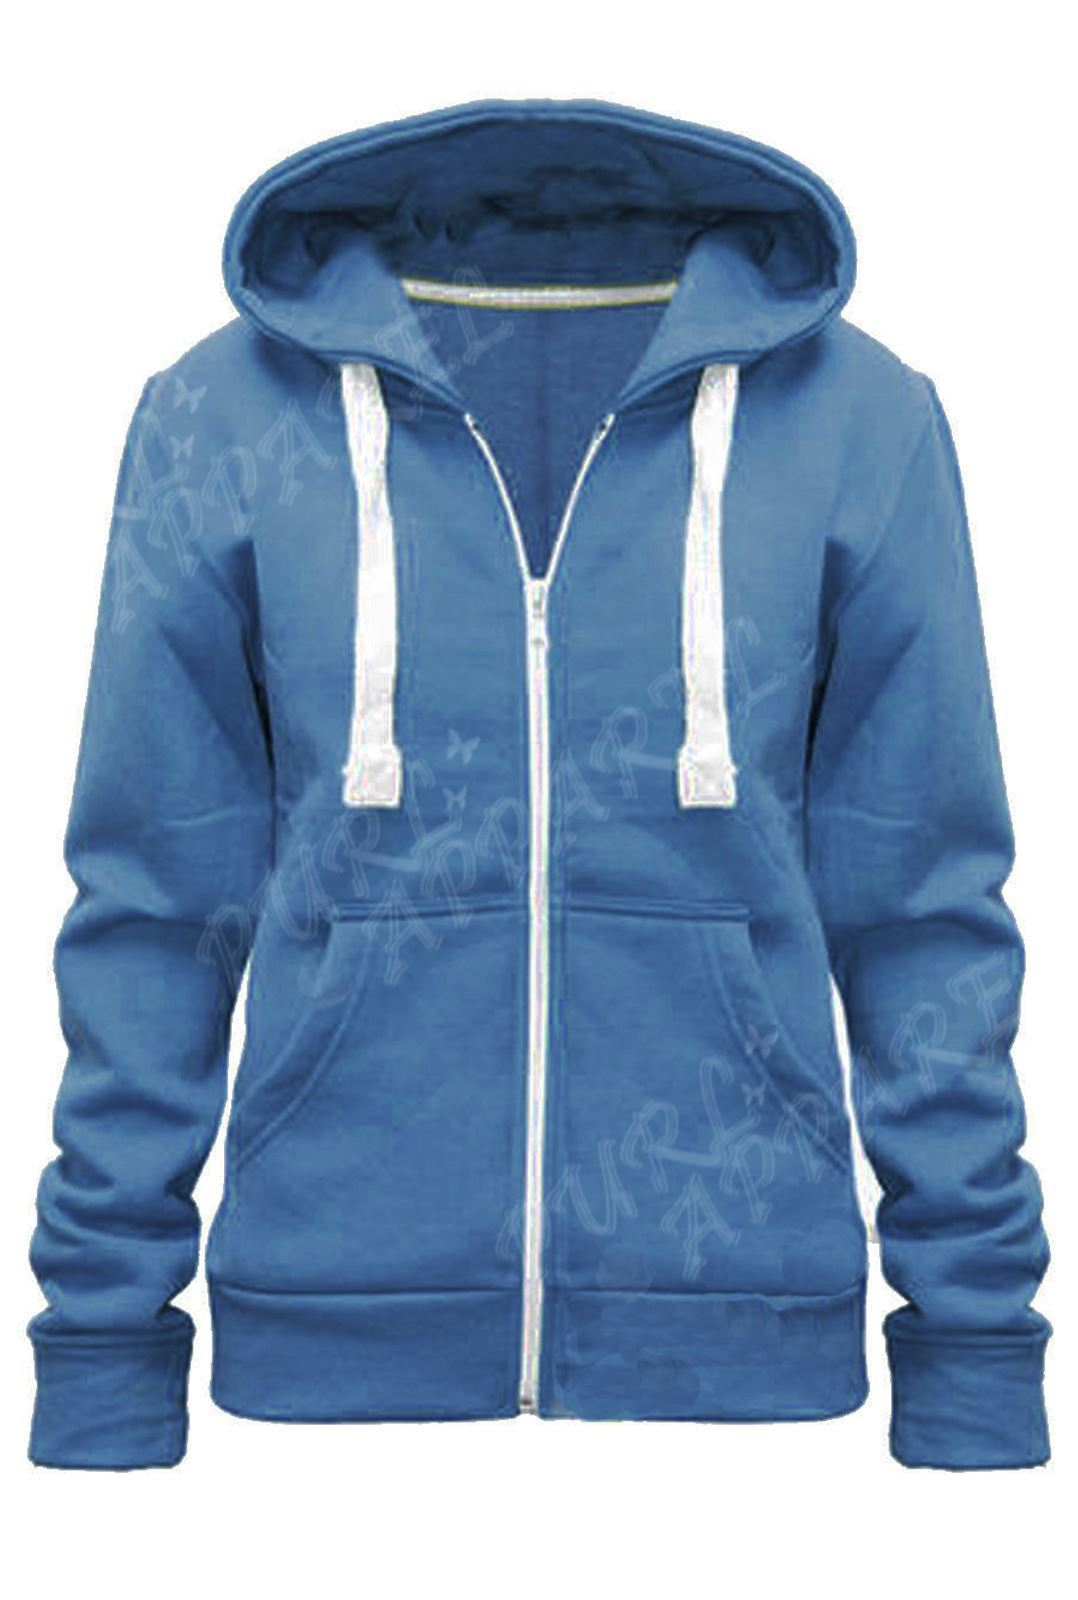 Girls' Sweatshirts. invalid category id. Girls' Sweatshirts. Product - Texan Girl Texas Girl Youth Full-Zip Hooded Sweatshirt. Clearance. Product Image. should review the Terms & Conditions for a more detailed description as well as service limitations prior to signing up for ShippingPass.